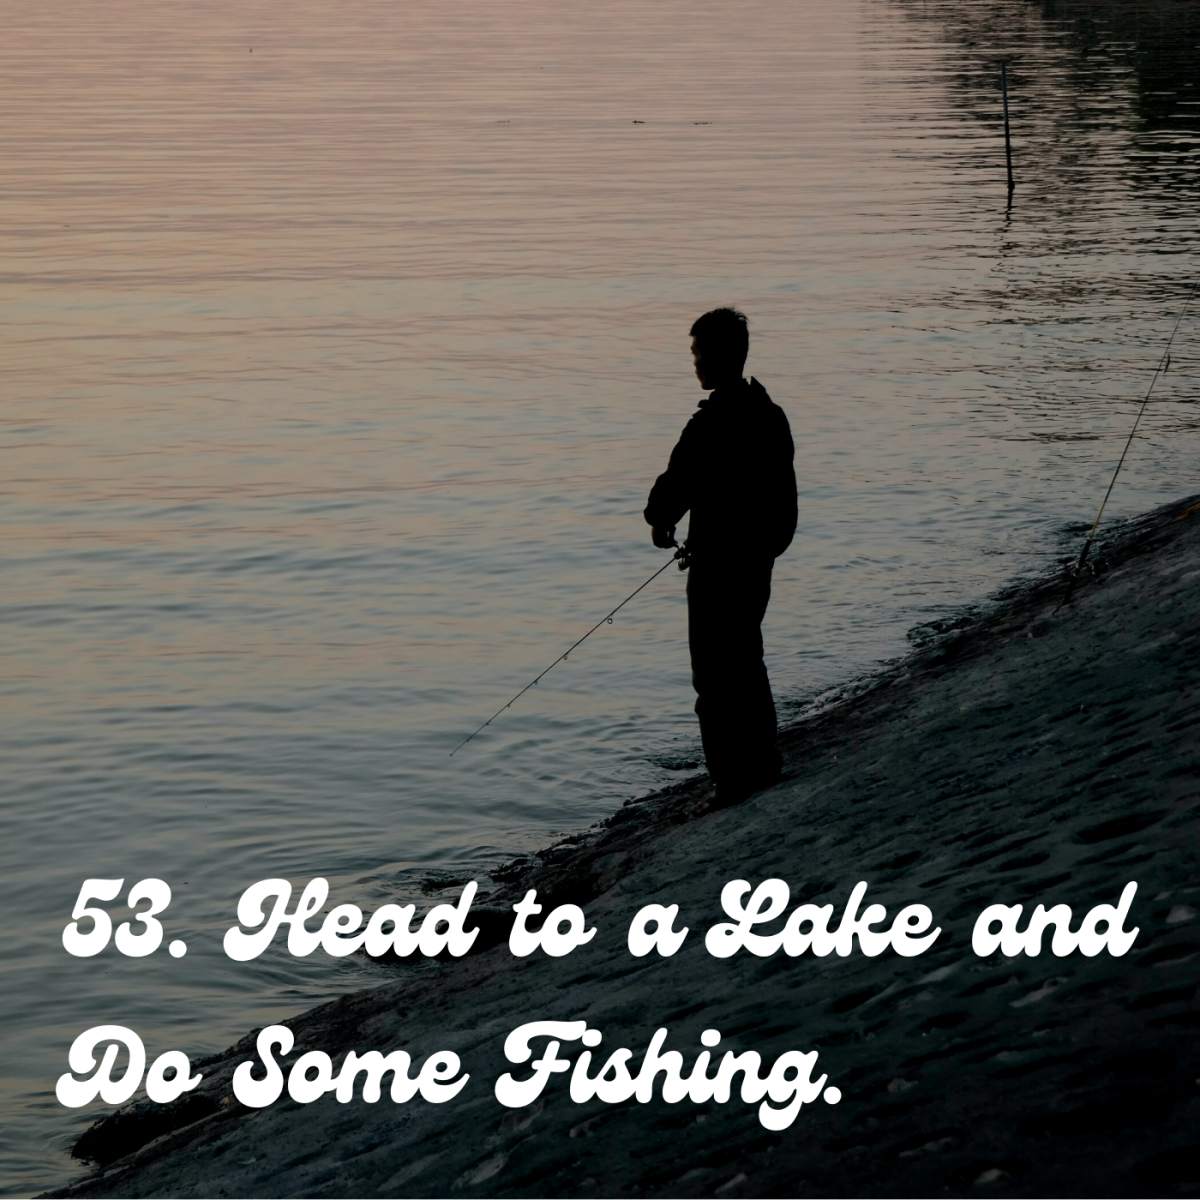 53. Head to a lake and do some fishing.